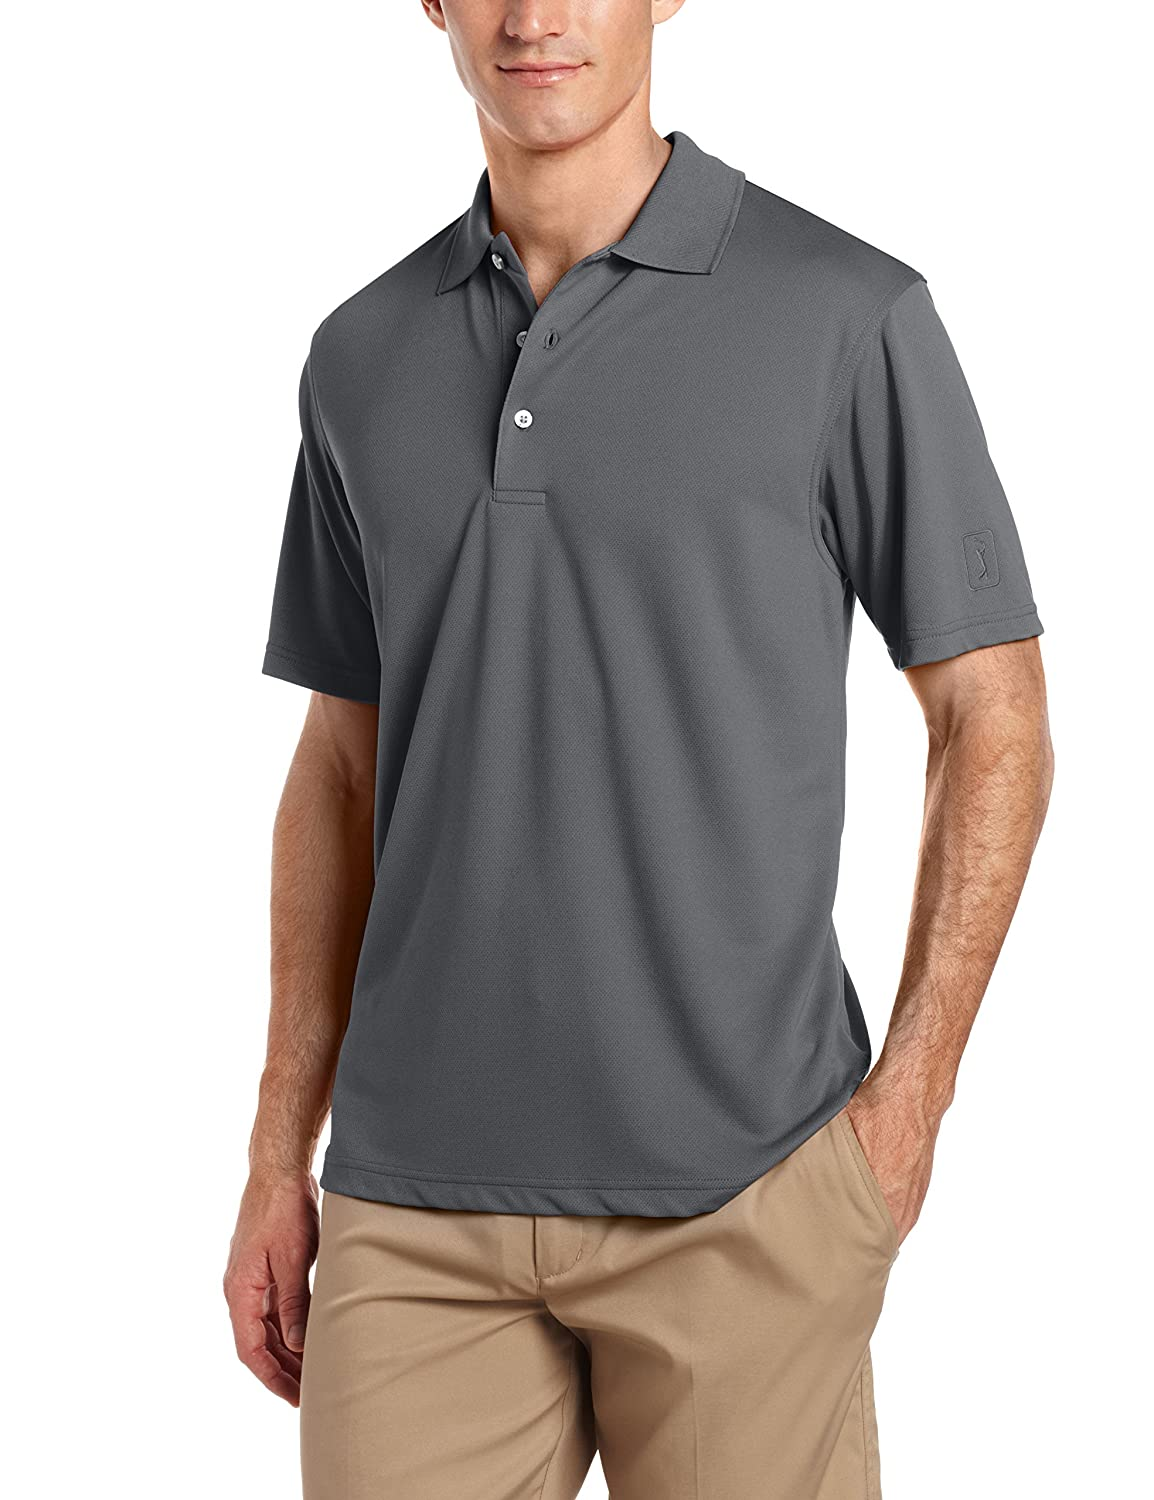 8f6bfb142d3 Top 10 Best Men's Polo Shirts Buying Guide 2019-2020 on Flipboard by ...